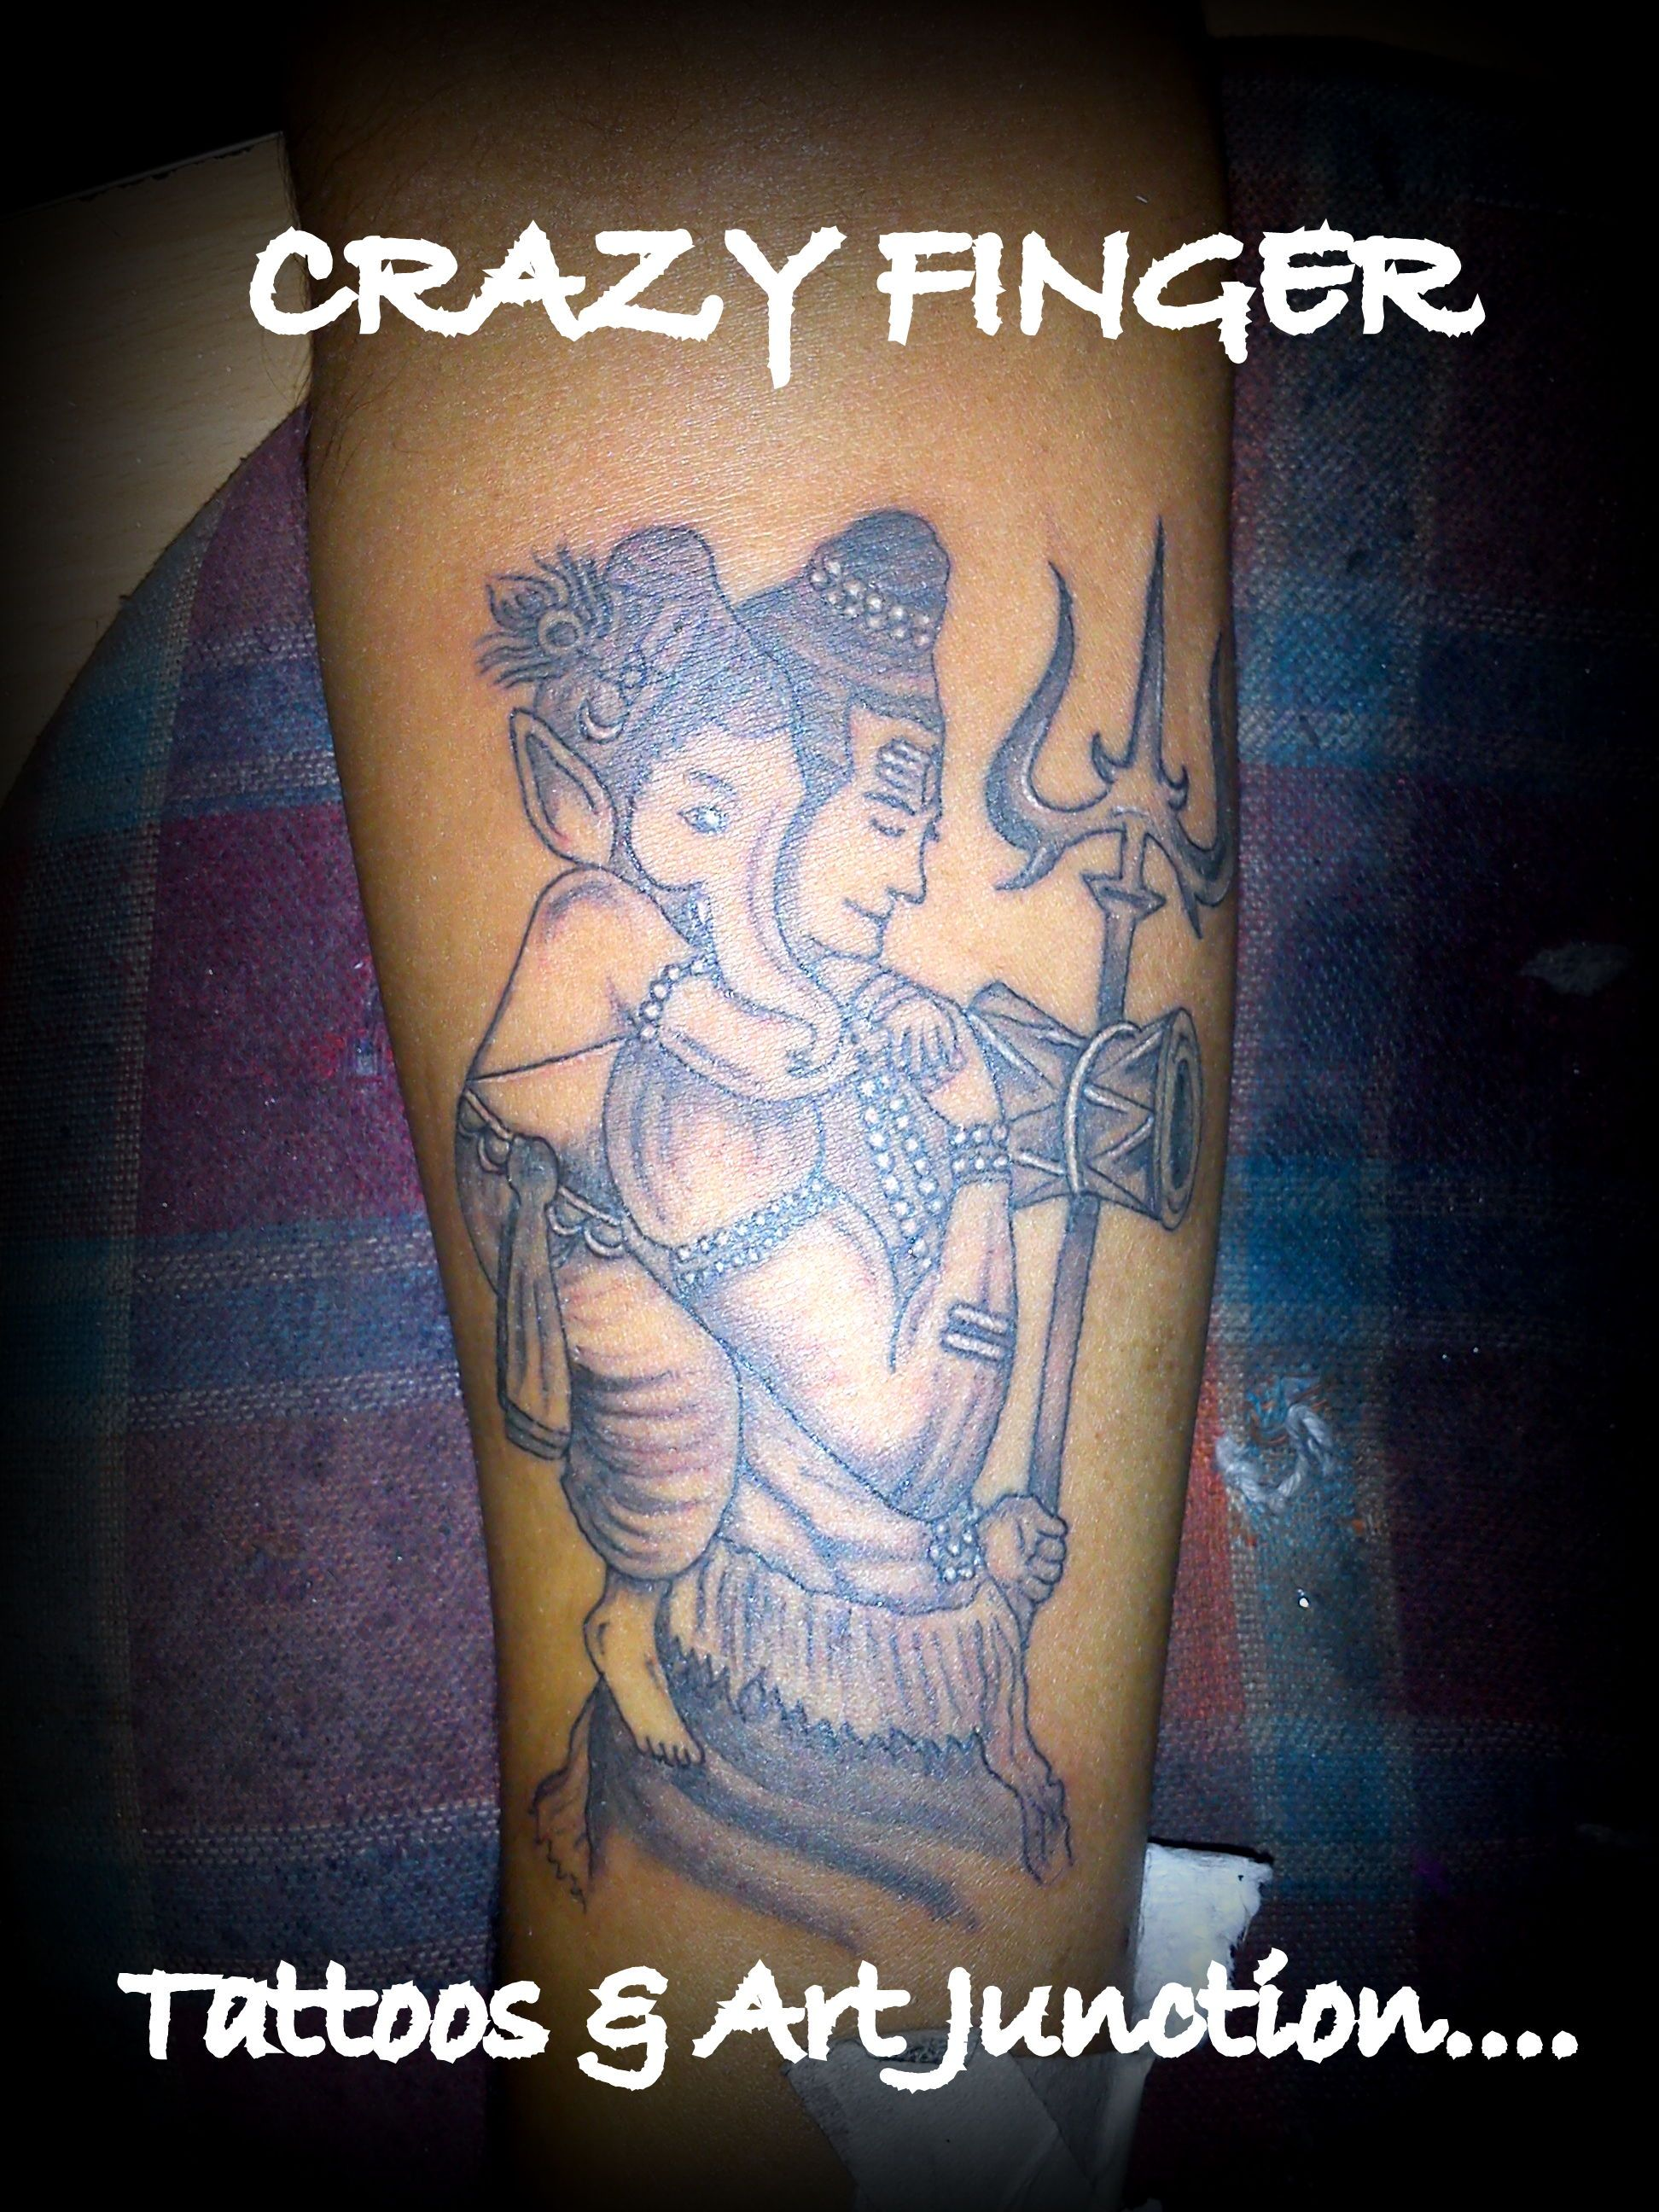 fa484fa5c #lord #shiva #ganesha #trishul #tattoo. Find this Pin and more on Nilesh  Crazy Finger tattoos by nilesh sharma.